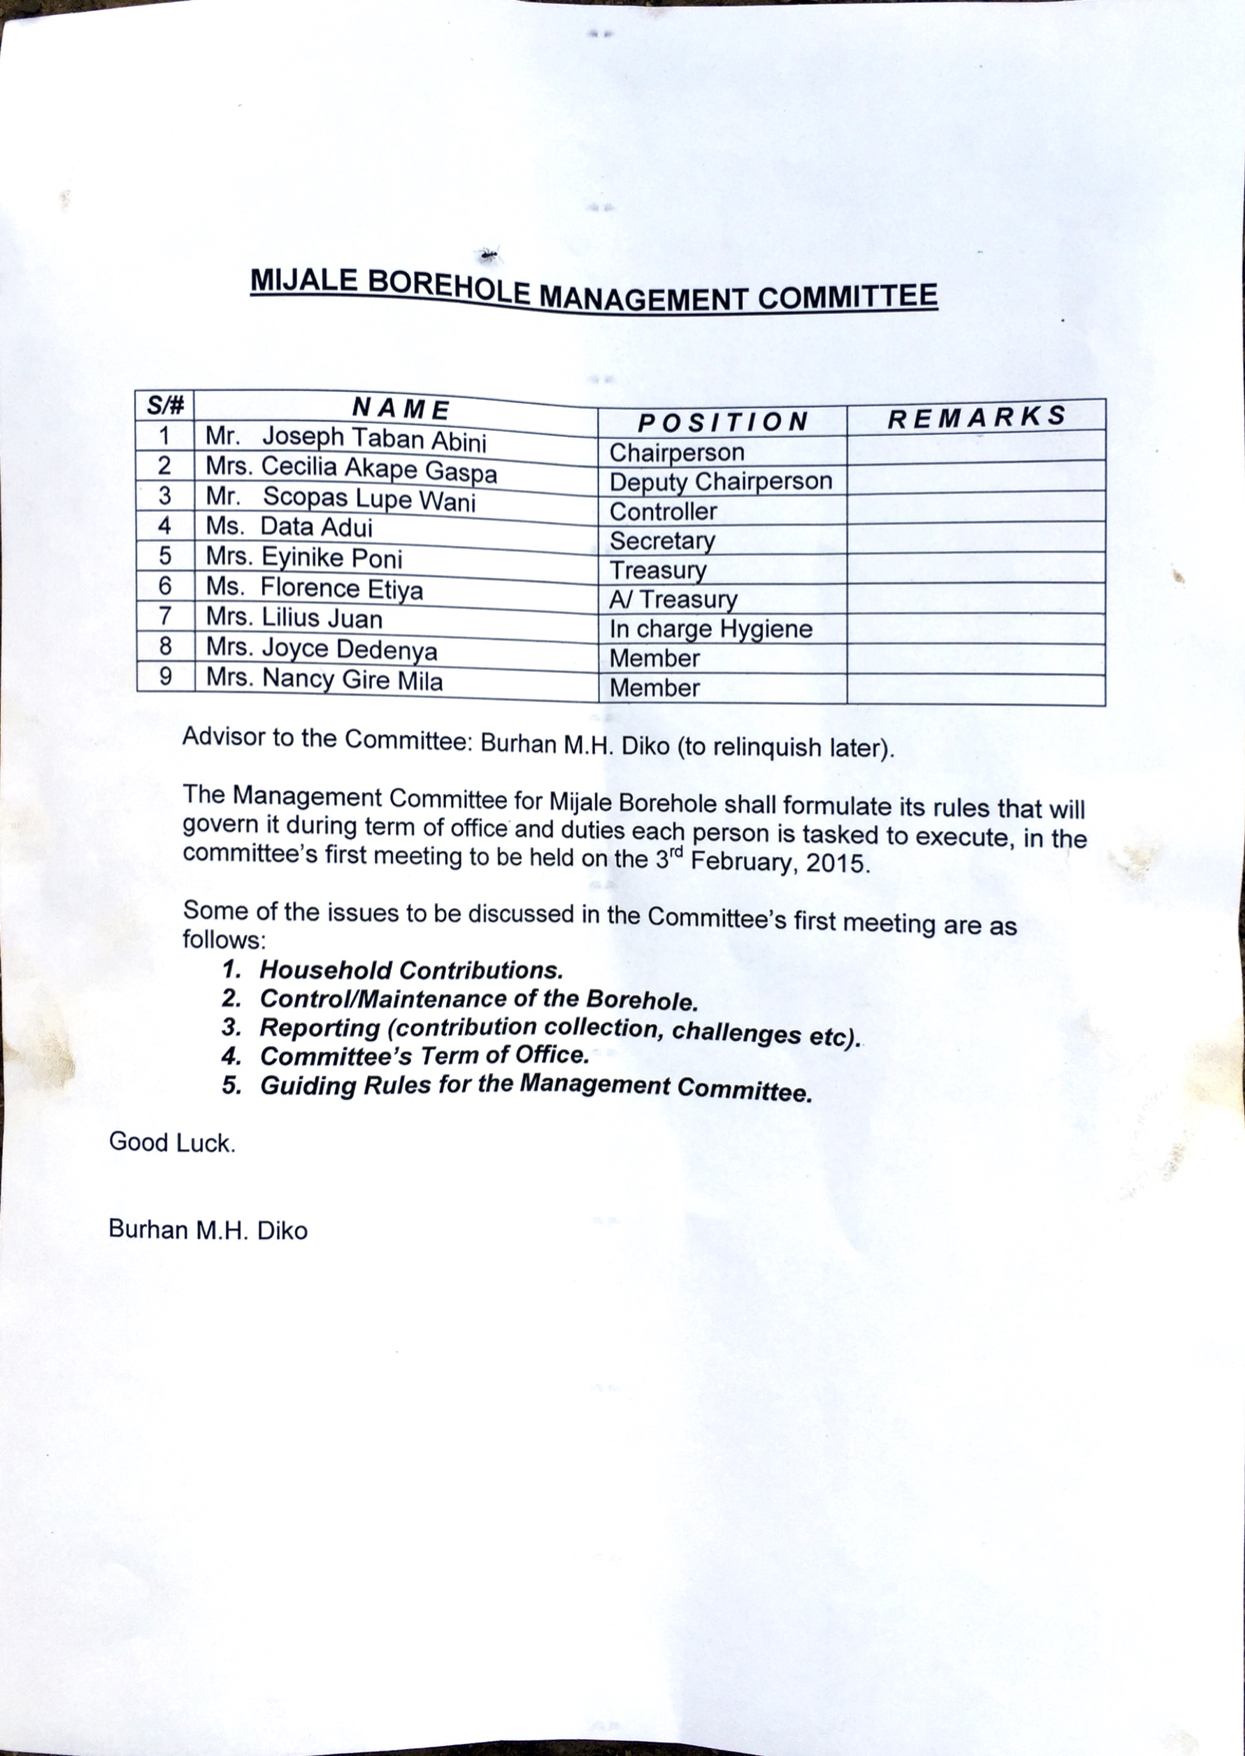 The committee members and tasks.